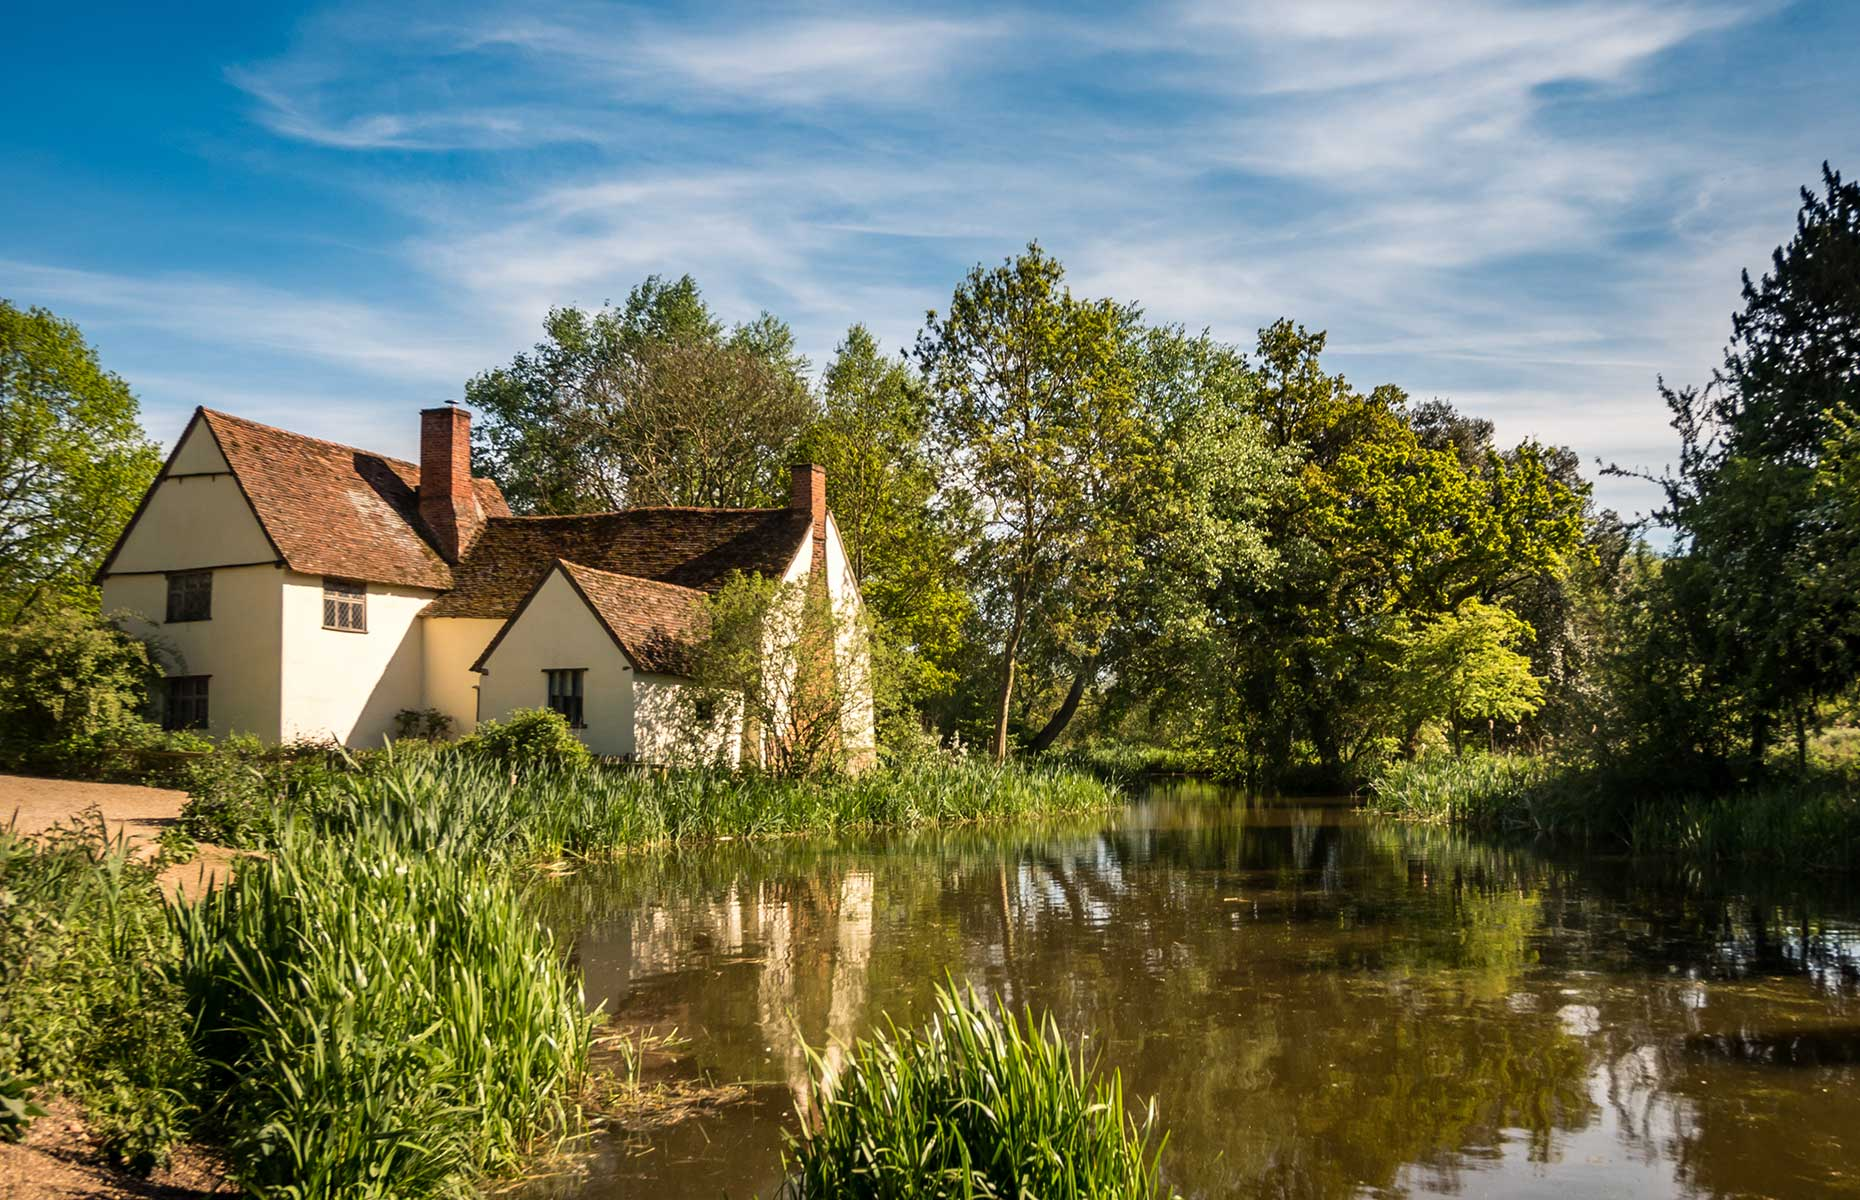 Willy Lott's House in Dedham Vale (Image: pxl.store/Shutterstock)